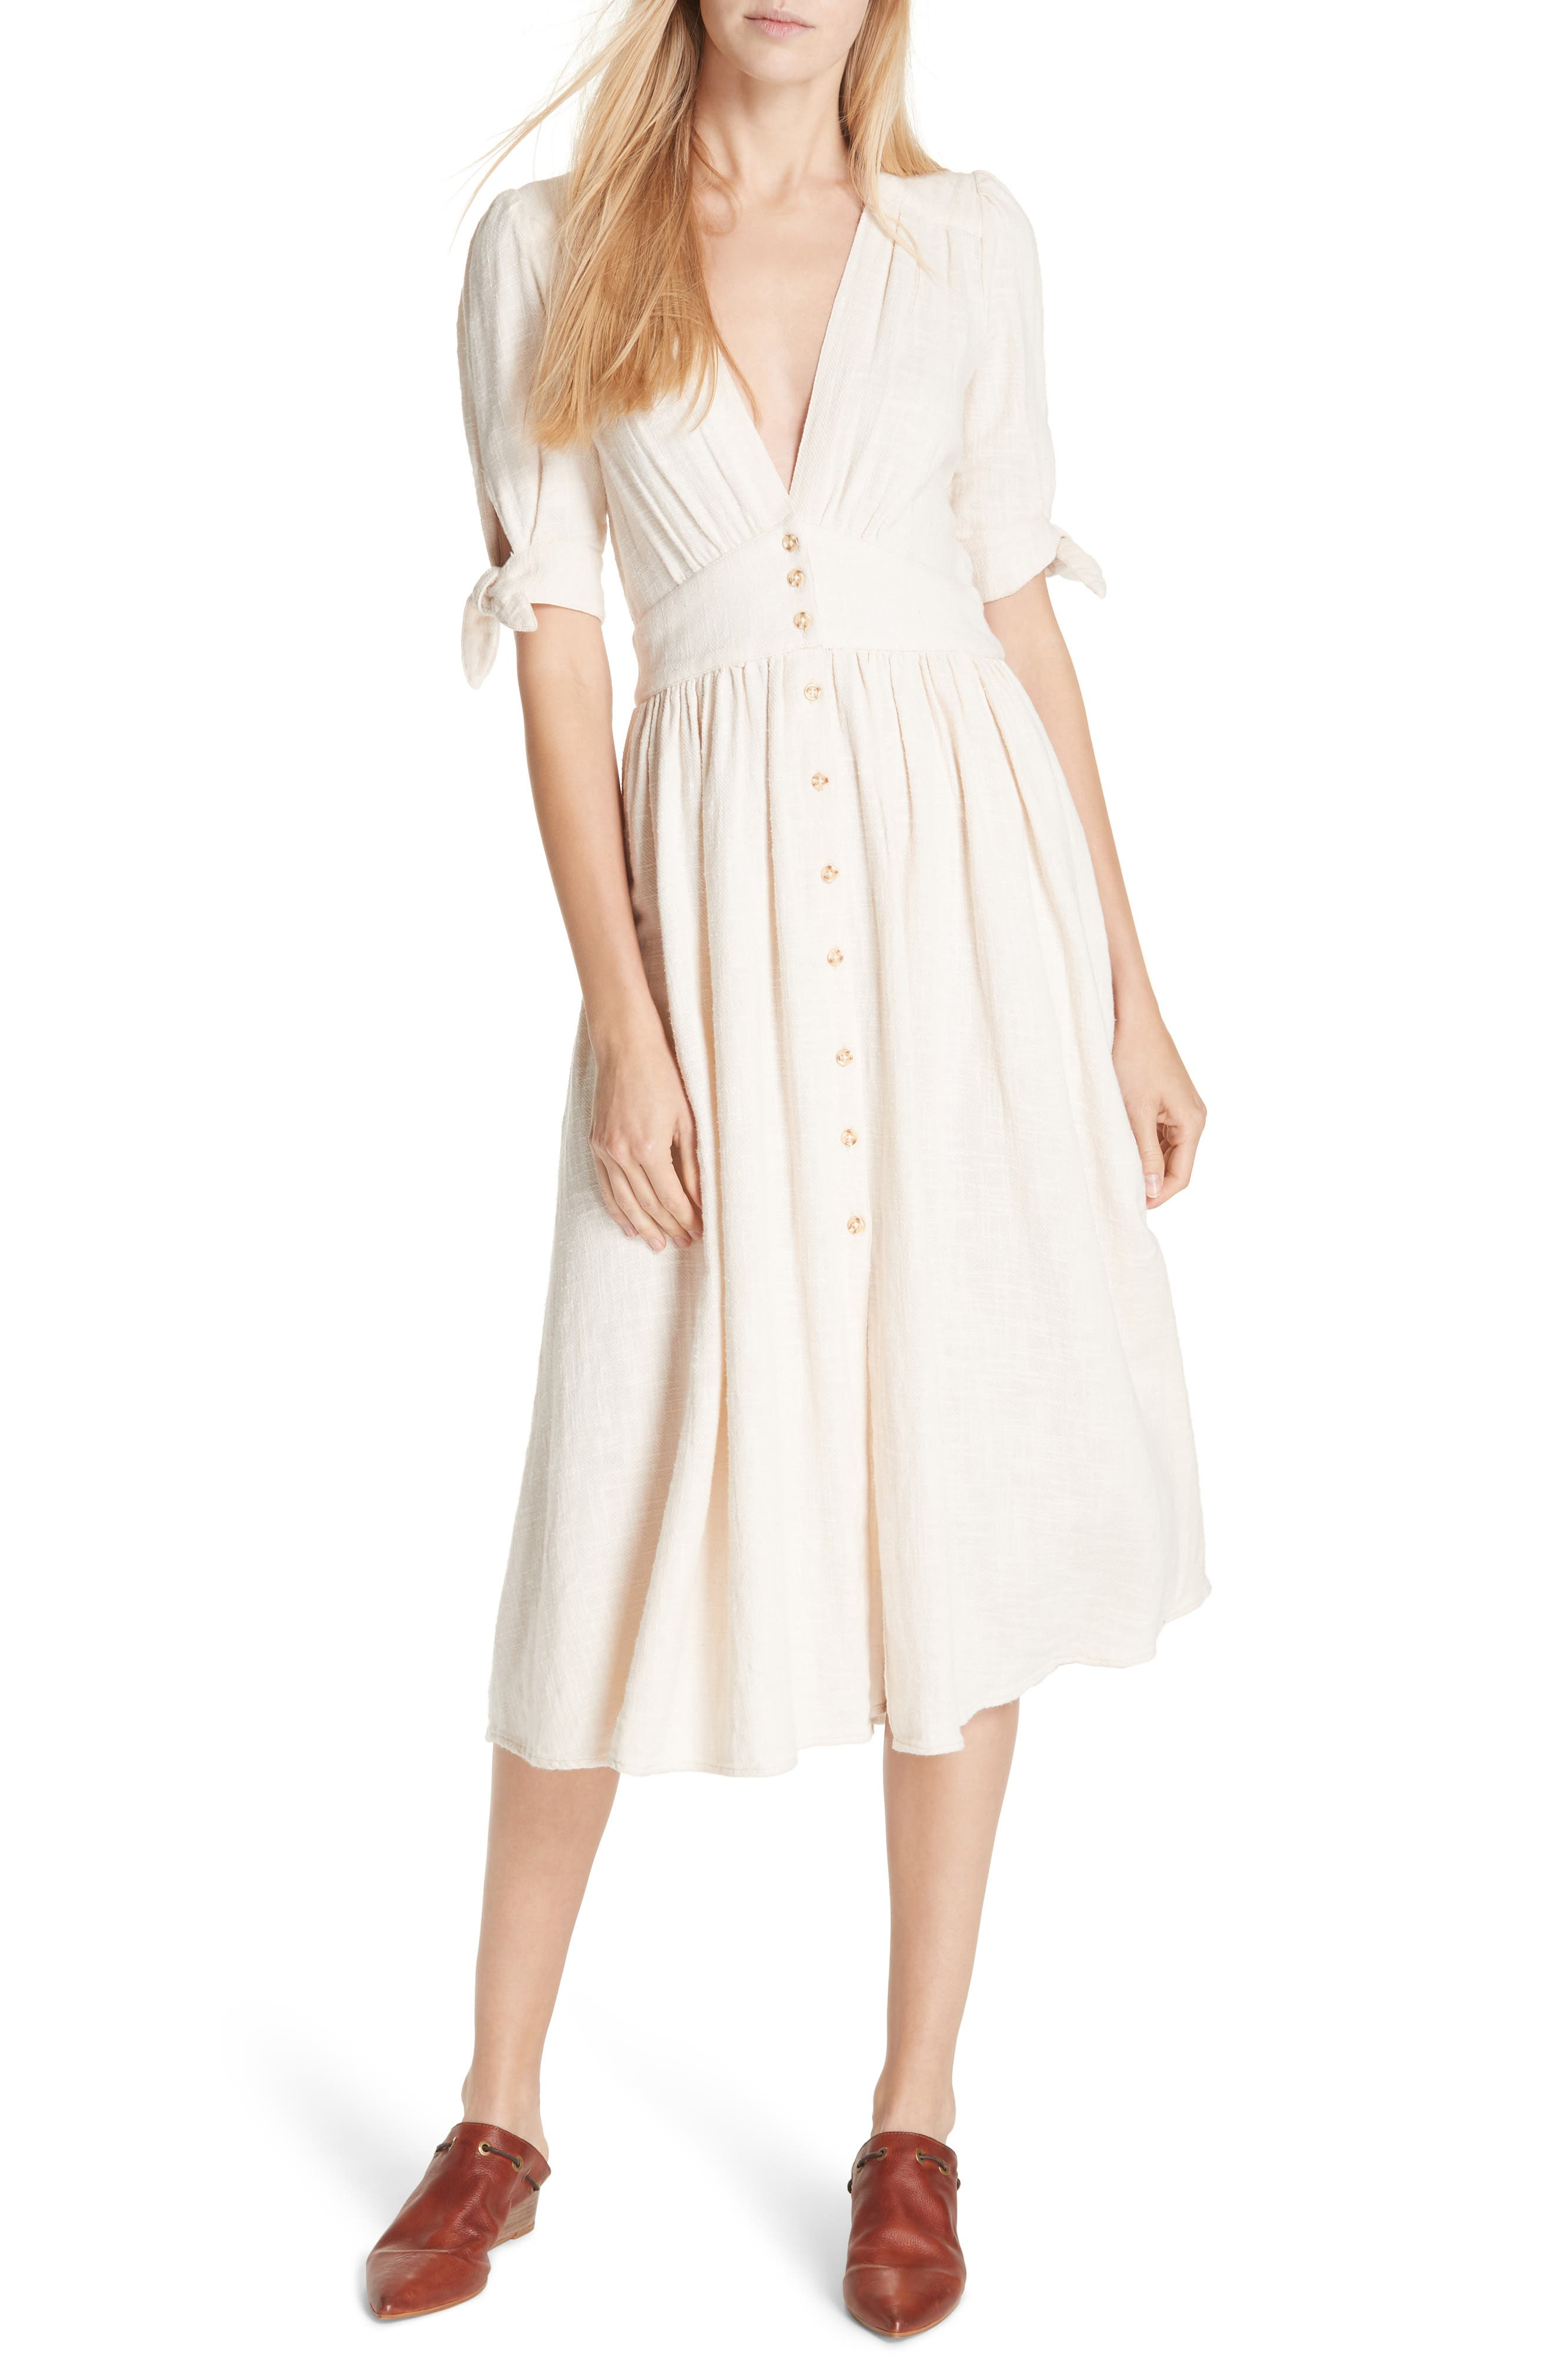 FREE PEOPLE Love of My Life Midi Dress, Main, color, IVORY